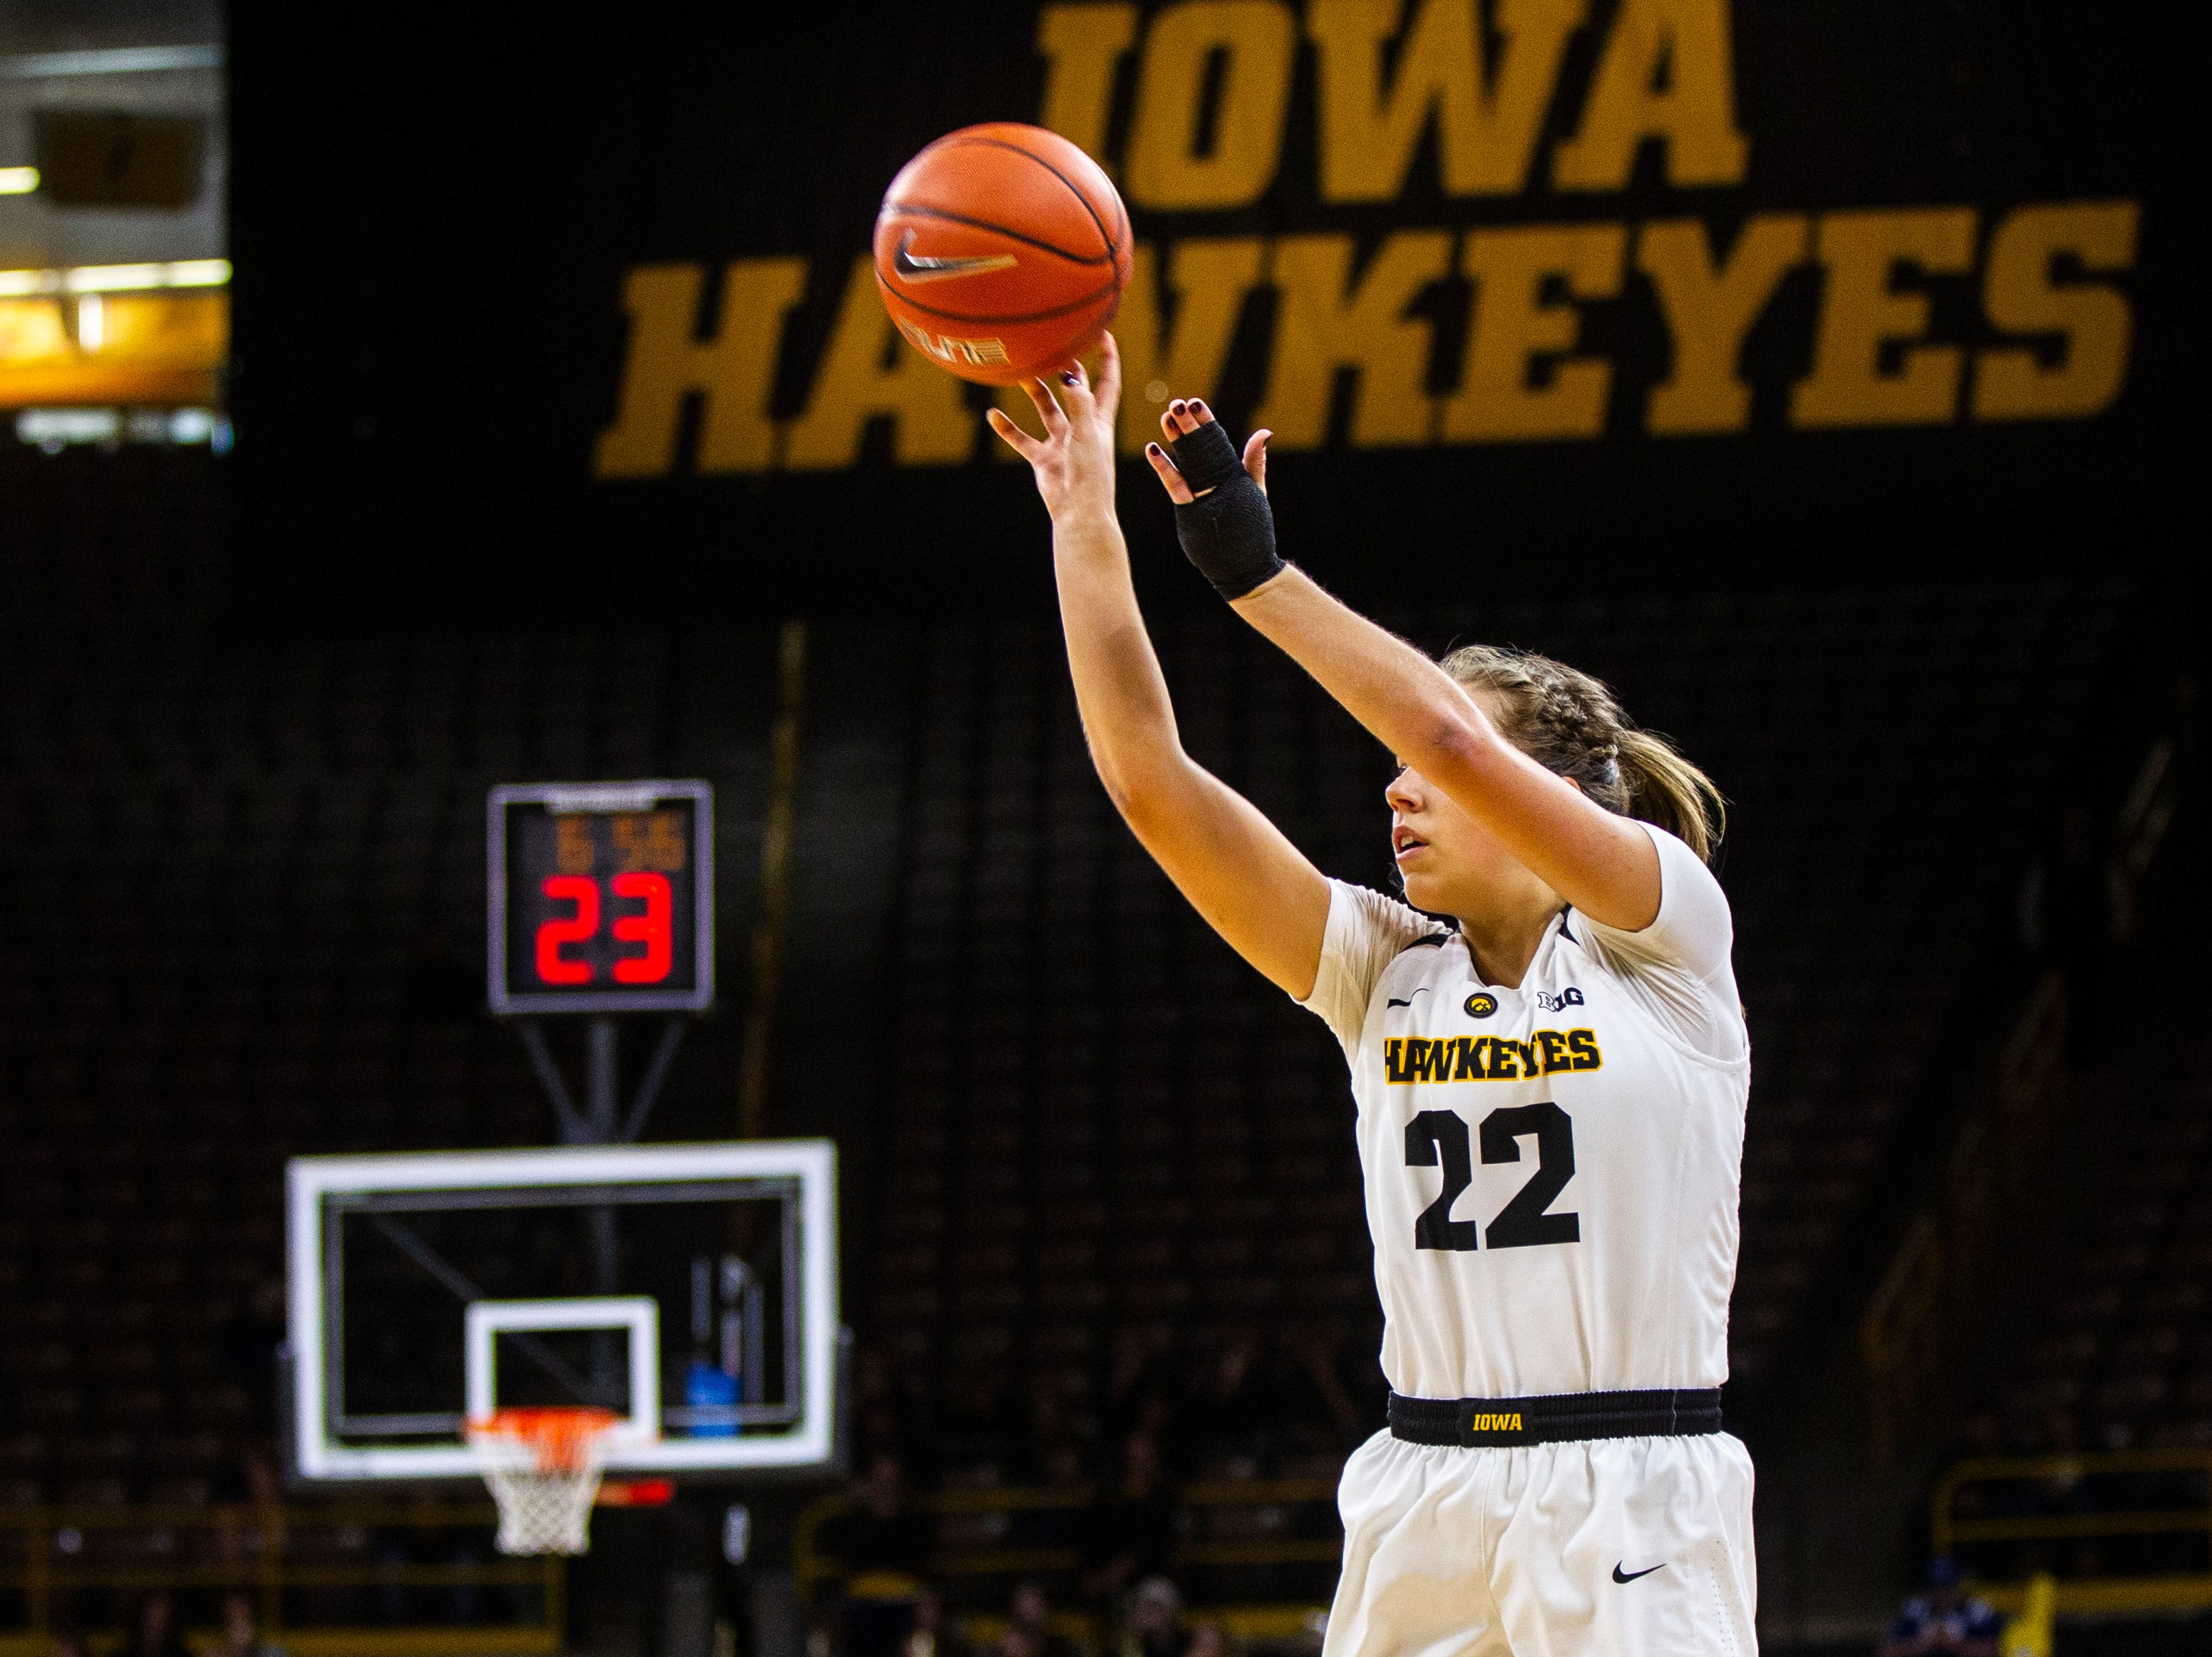 Iowa guard Kathleen Doyle (22) shoots a 3-point basket during a NCAA women's basketball game on Sunday, Dec. 16, 2018, at Carver-Hawkeye Arena in Iowa City.